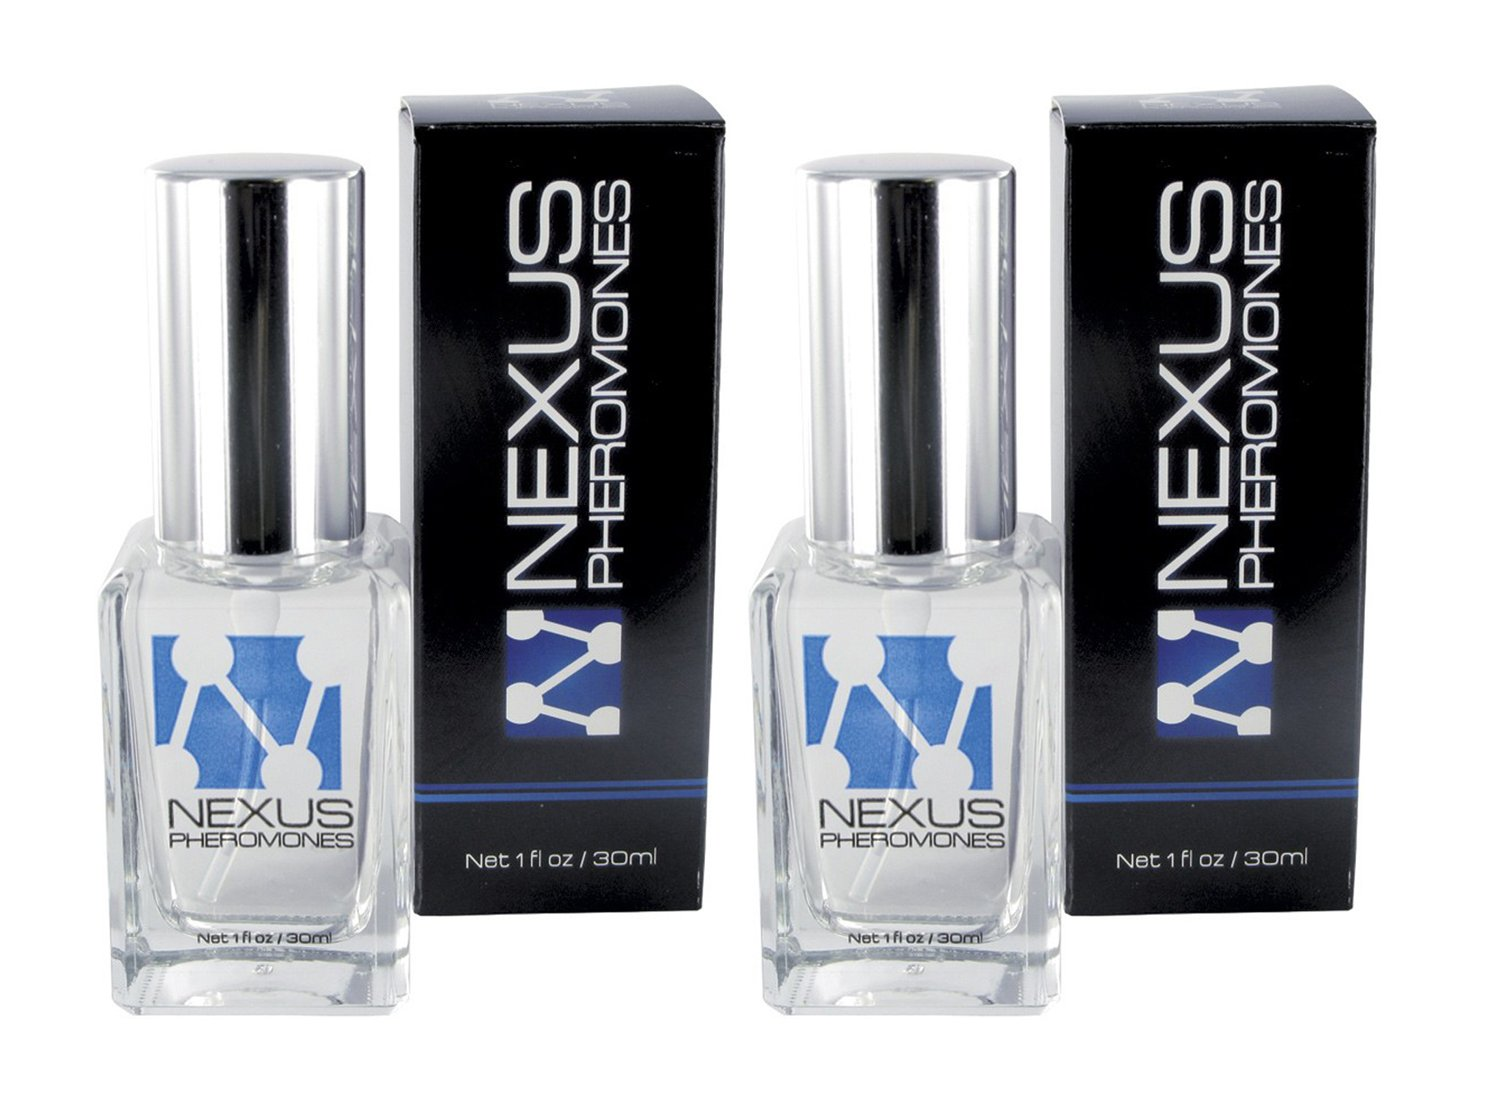 Nexus Pheromones Cologne - 2 Bottles - Natural Health Store